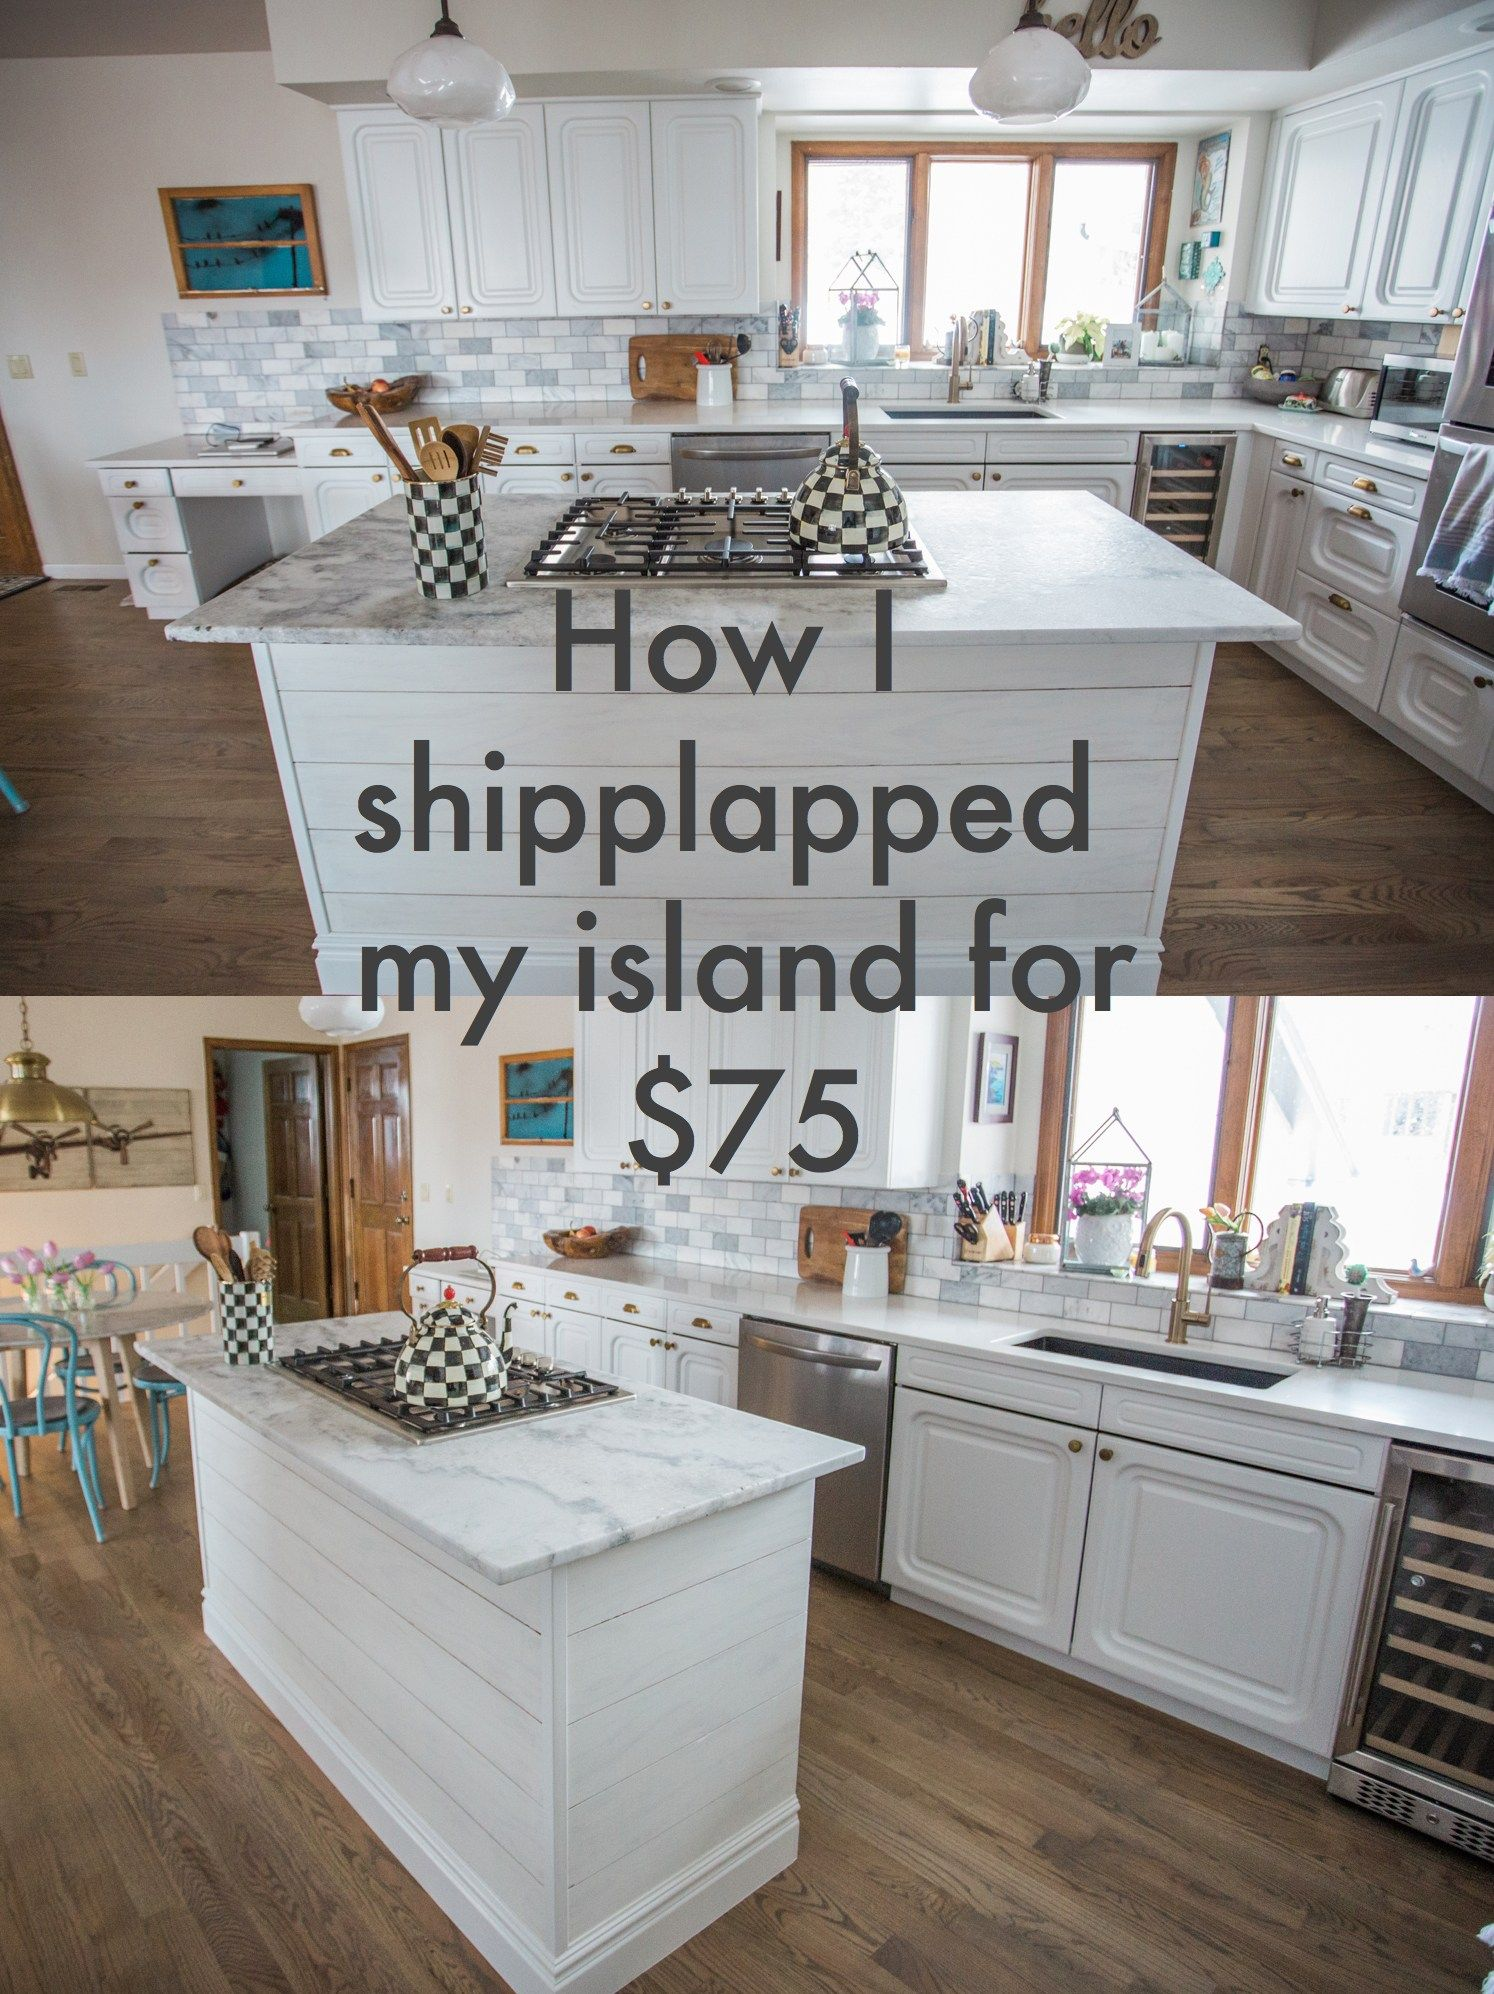 Kitchen island shiplap in 2019 | Installing shiplap, Diy ... on kitchen ideas for small kitchens with island, kitchen room remodel ideas, wood top kitchen countertop ideas, granite kitchen remodel ideas, contemporary kitchen remodel ideas, vanity remodel ideas, kitchen ideas with light wood cabinets, diy wood countertops kitchen ideas, popular white kitchen remodel ideas, fence remodel ideas, large kitchen remodel ideas, kitchen countertop remodel ideas, kitchen remodel suggestions, open floor plan kitchen living room ideas, kitchen lighting ideas for small kitchens, classic kitchen remodel ideas, refurbish kitchen cabinets ideas, chest remodel ideas, kitchen storage remodel ideas, kitchen remodeling ideas for small kitchens,